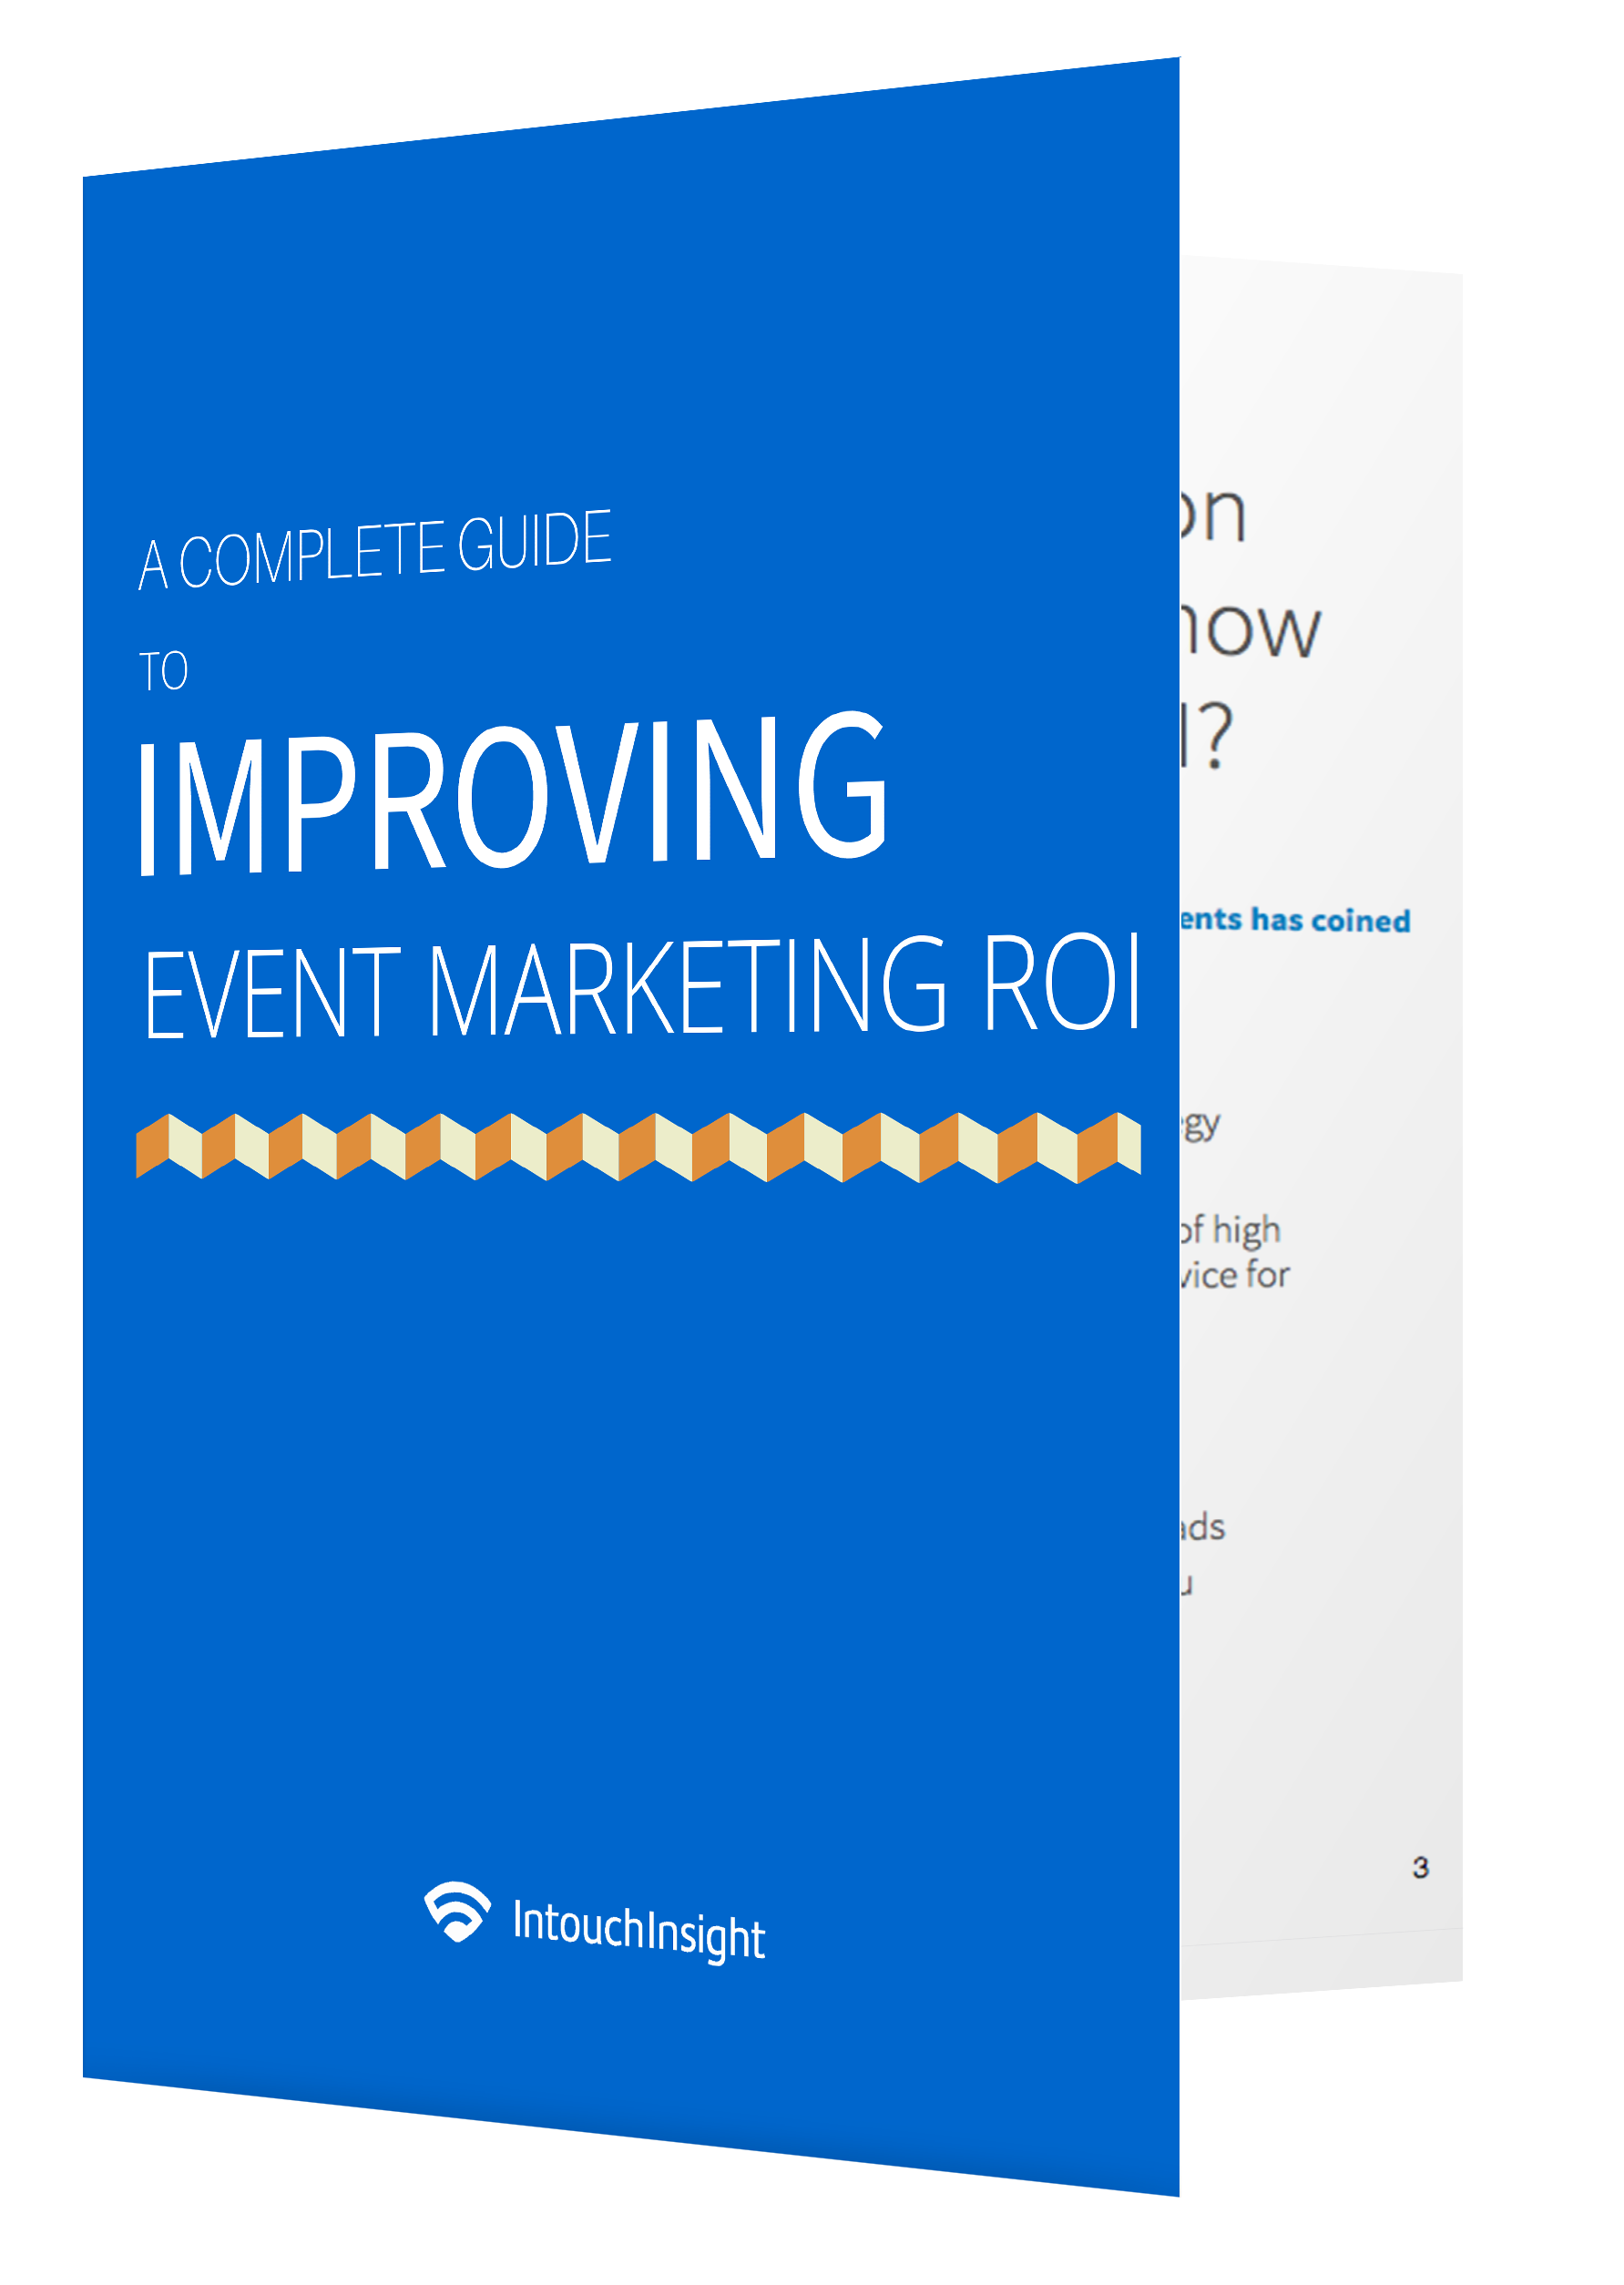 Complete Guide to Improving Event Marketing ROI